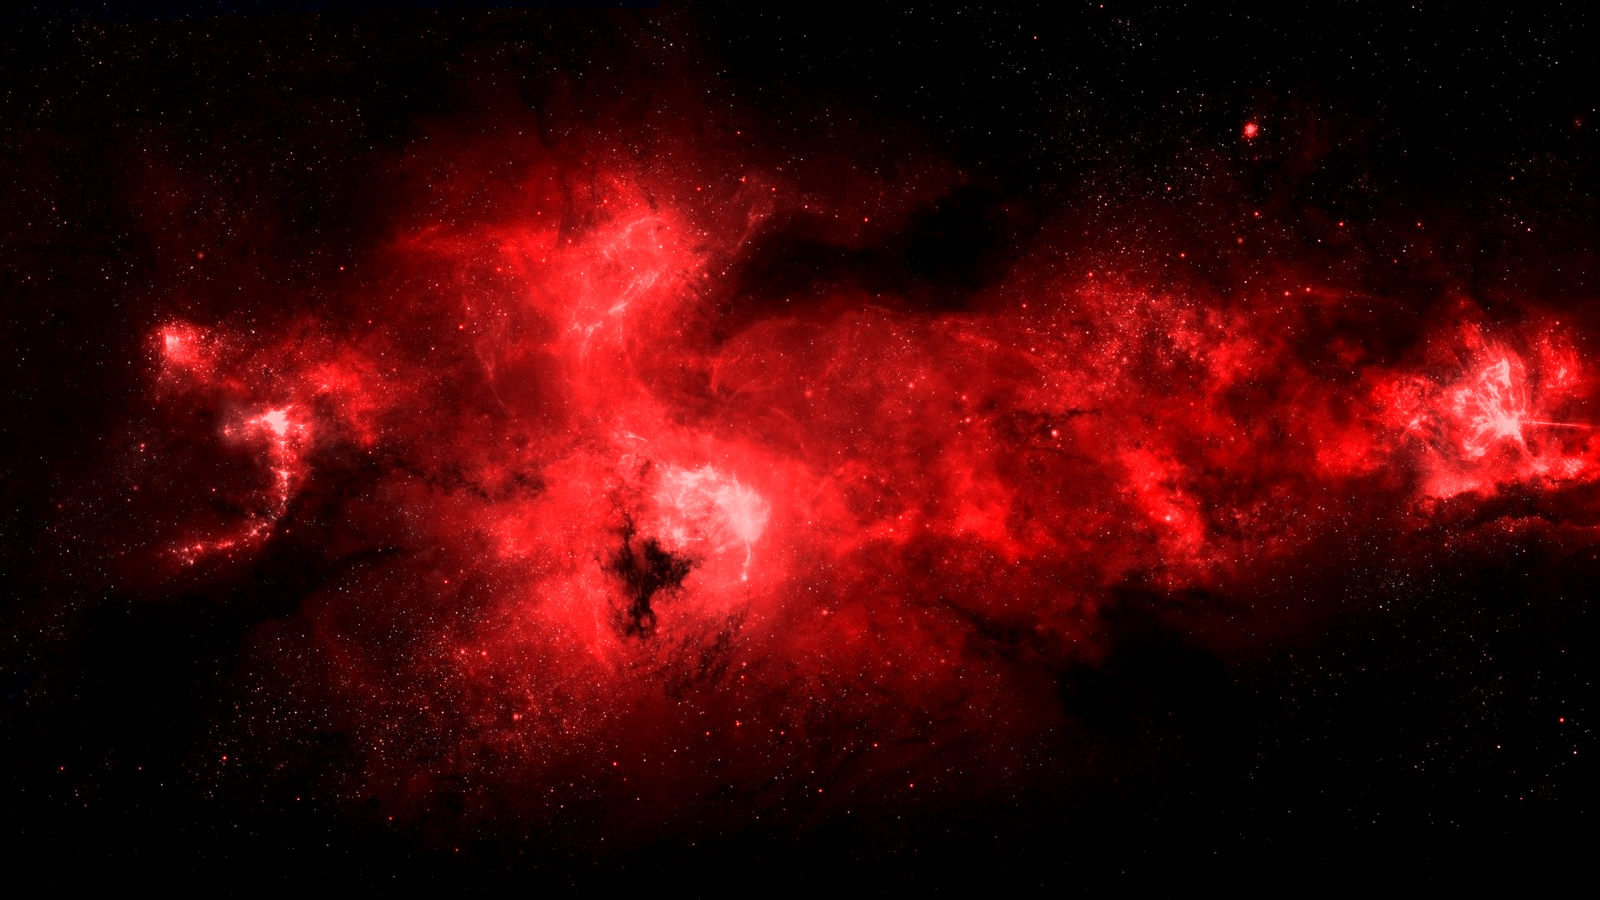 nebula wallpaper and background image | 1600x900 | id:206205